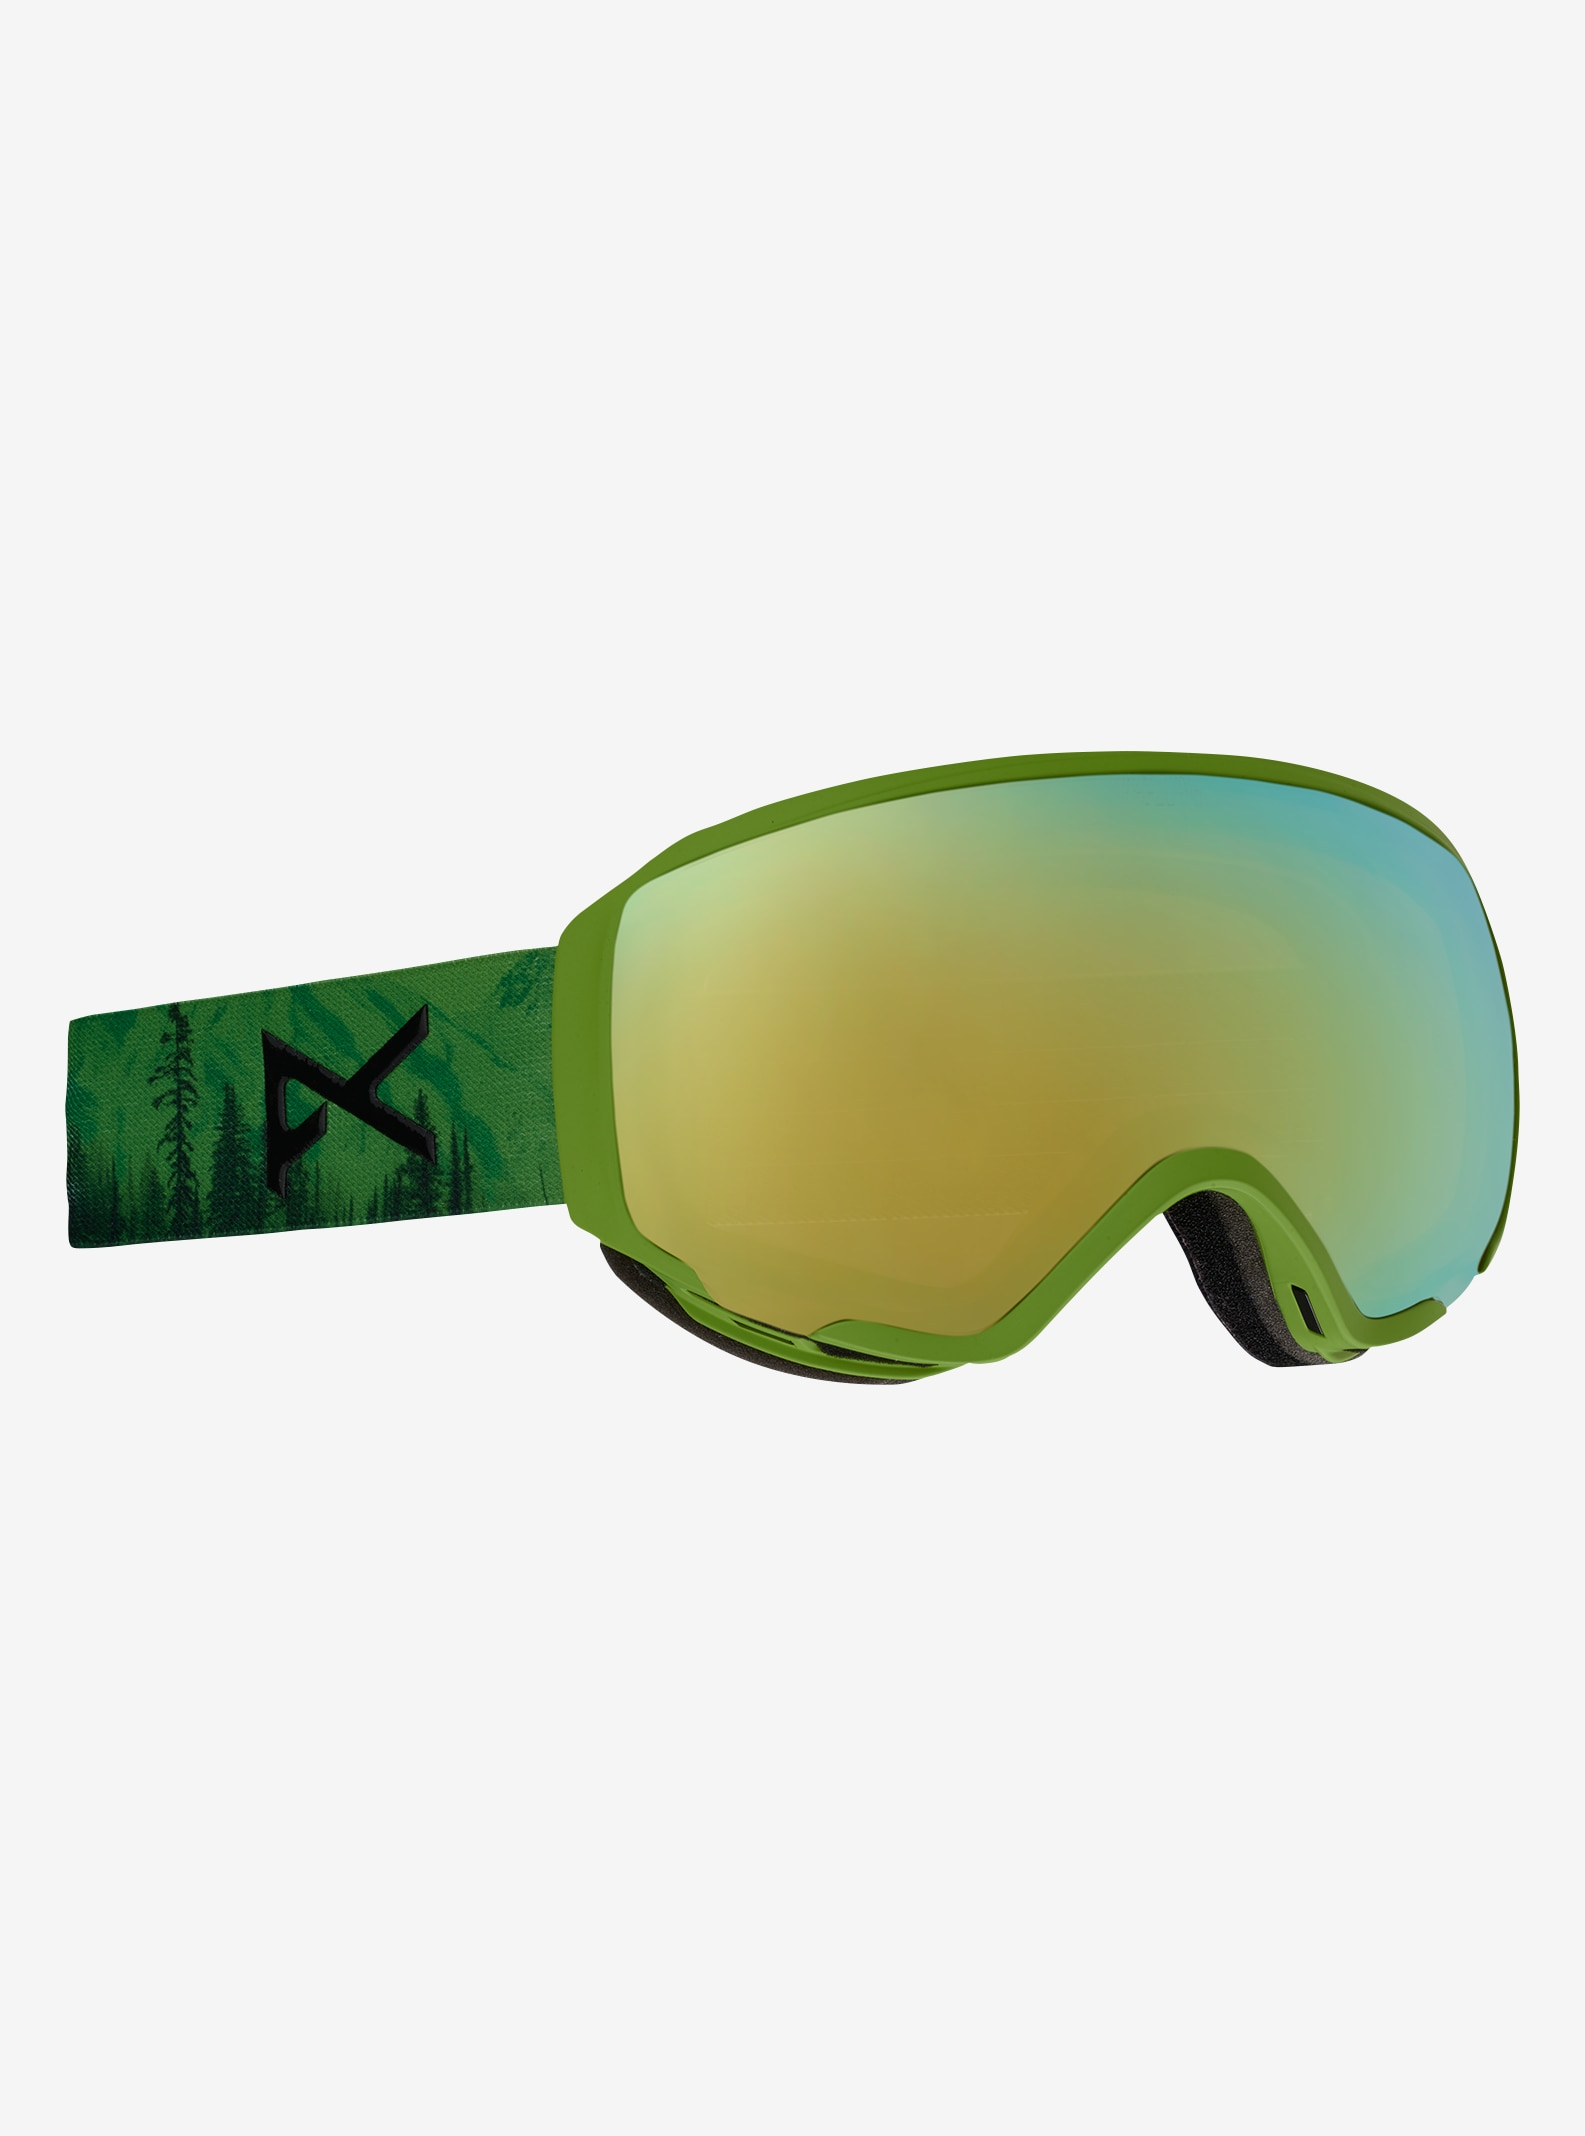 Women's Anon WM1 Goggle shown in Frame: Mother Nature, Lens: Gold Chrome, Spare: Blue Lagoon